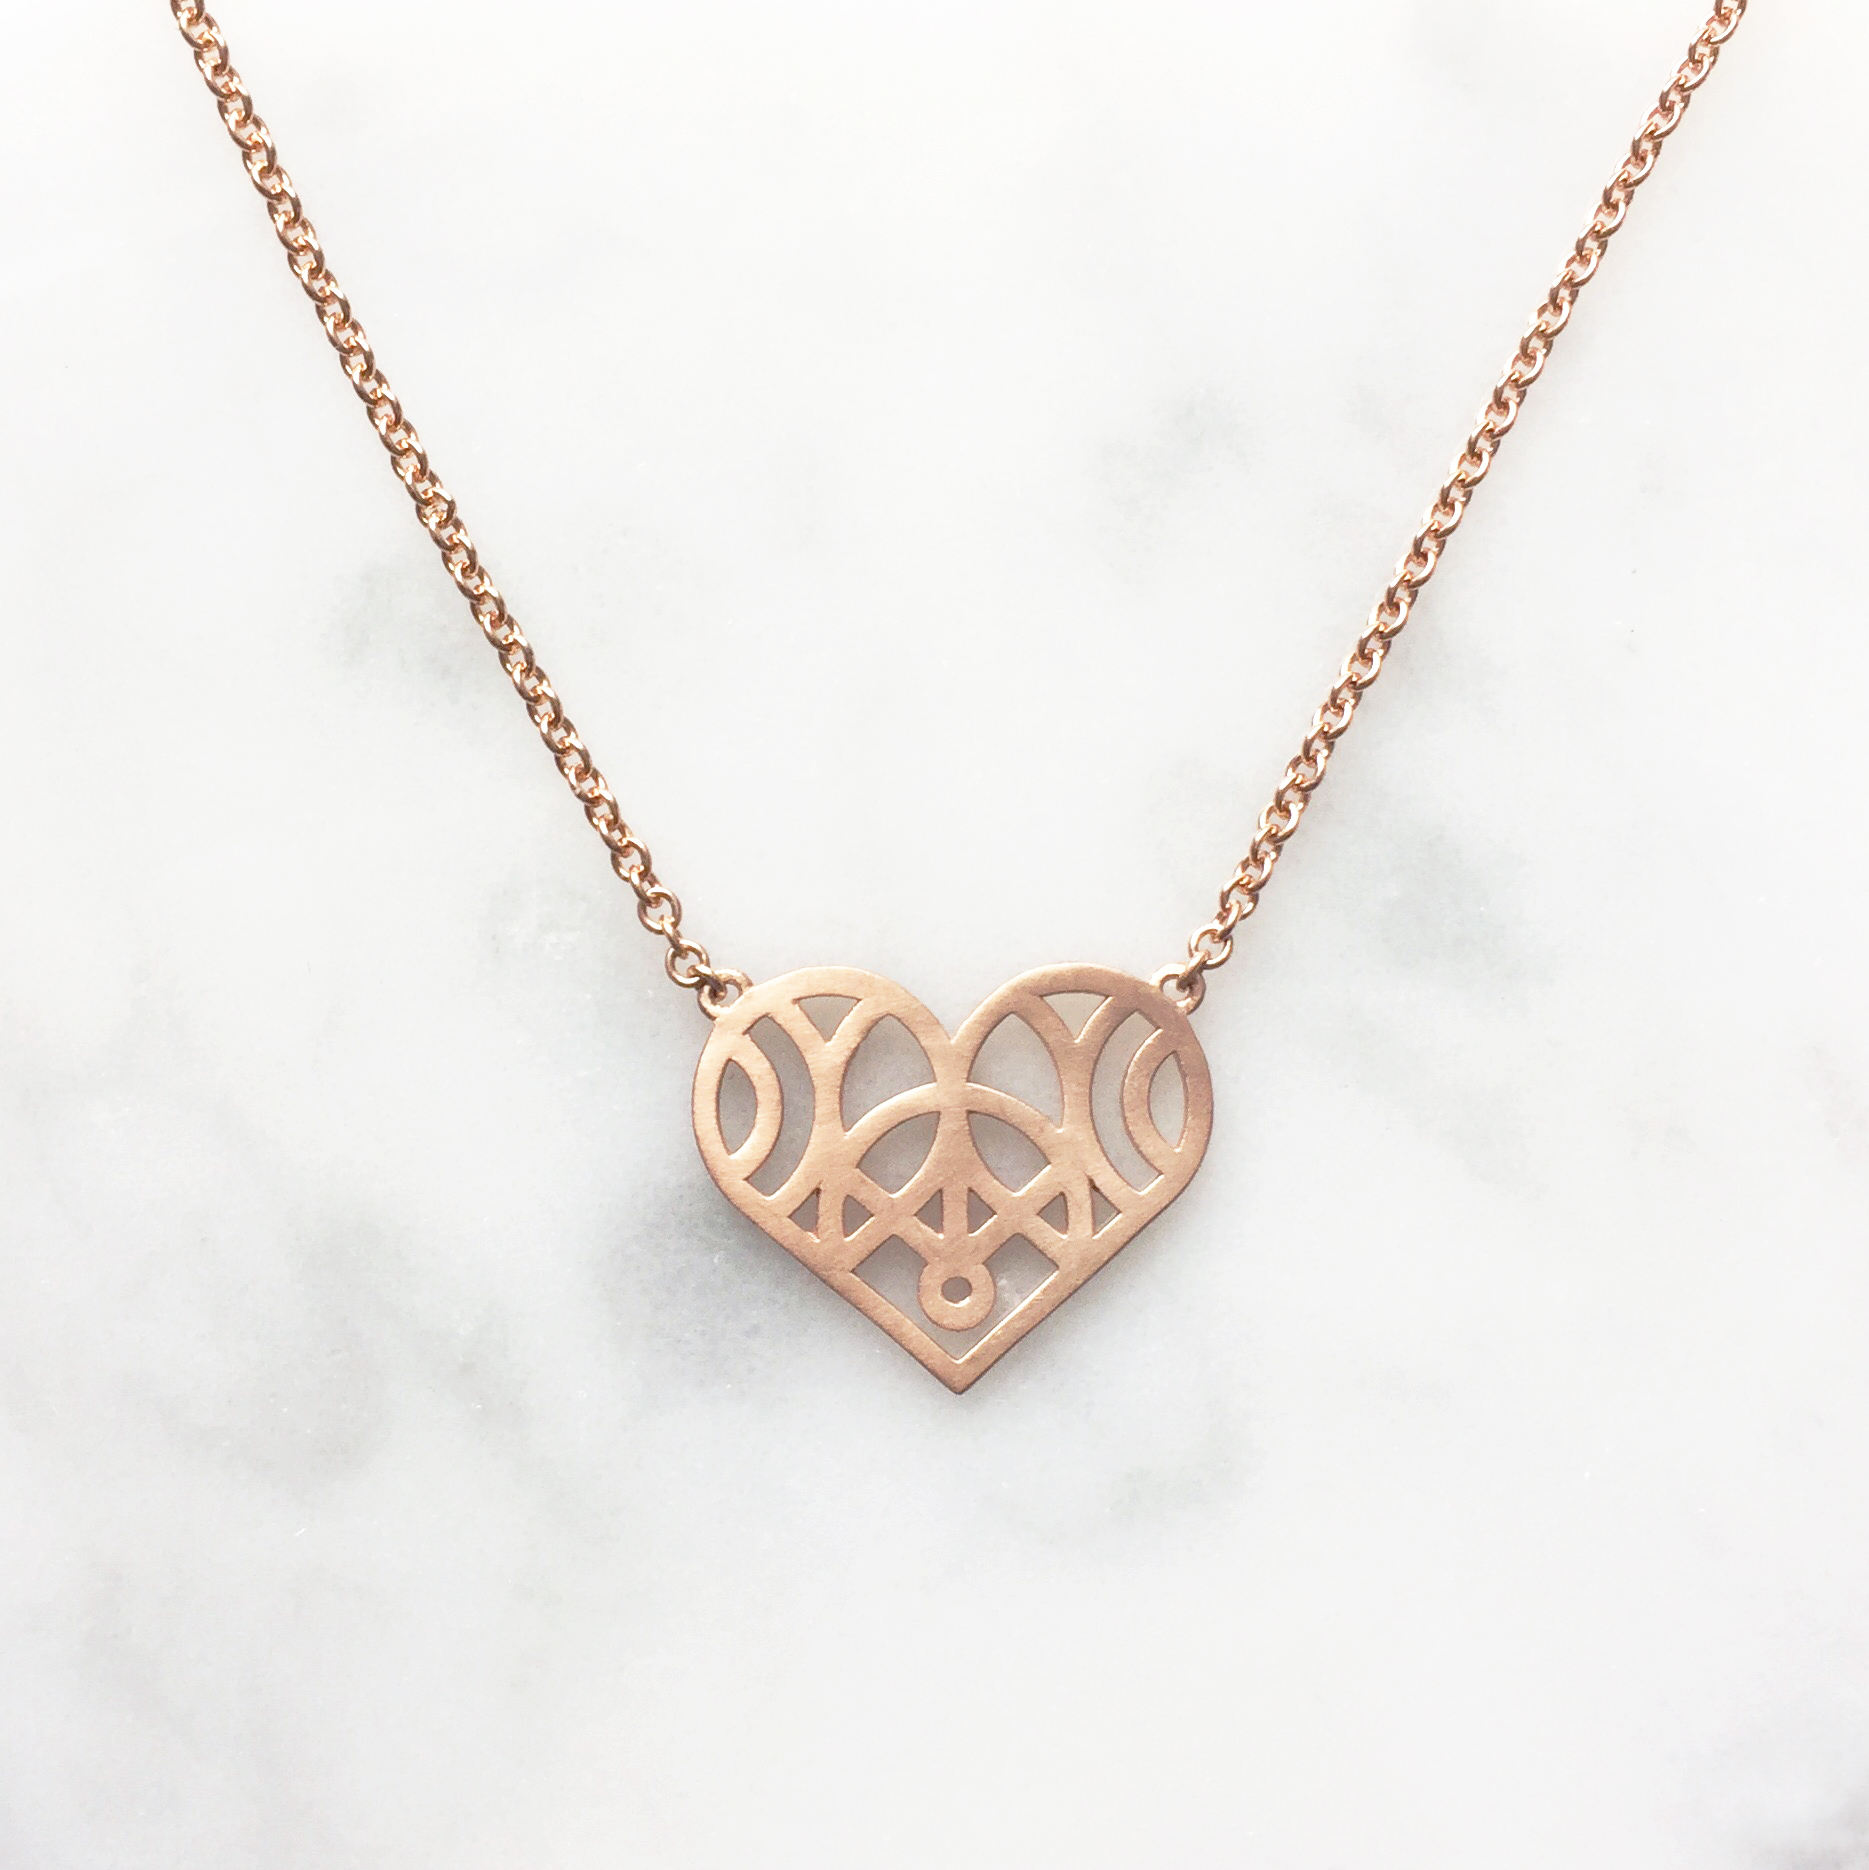 18ct rose gold heart pendant, using gold from customers inherited wedding band.